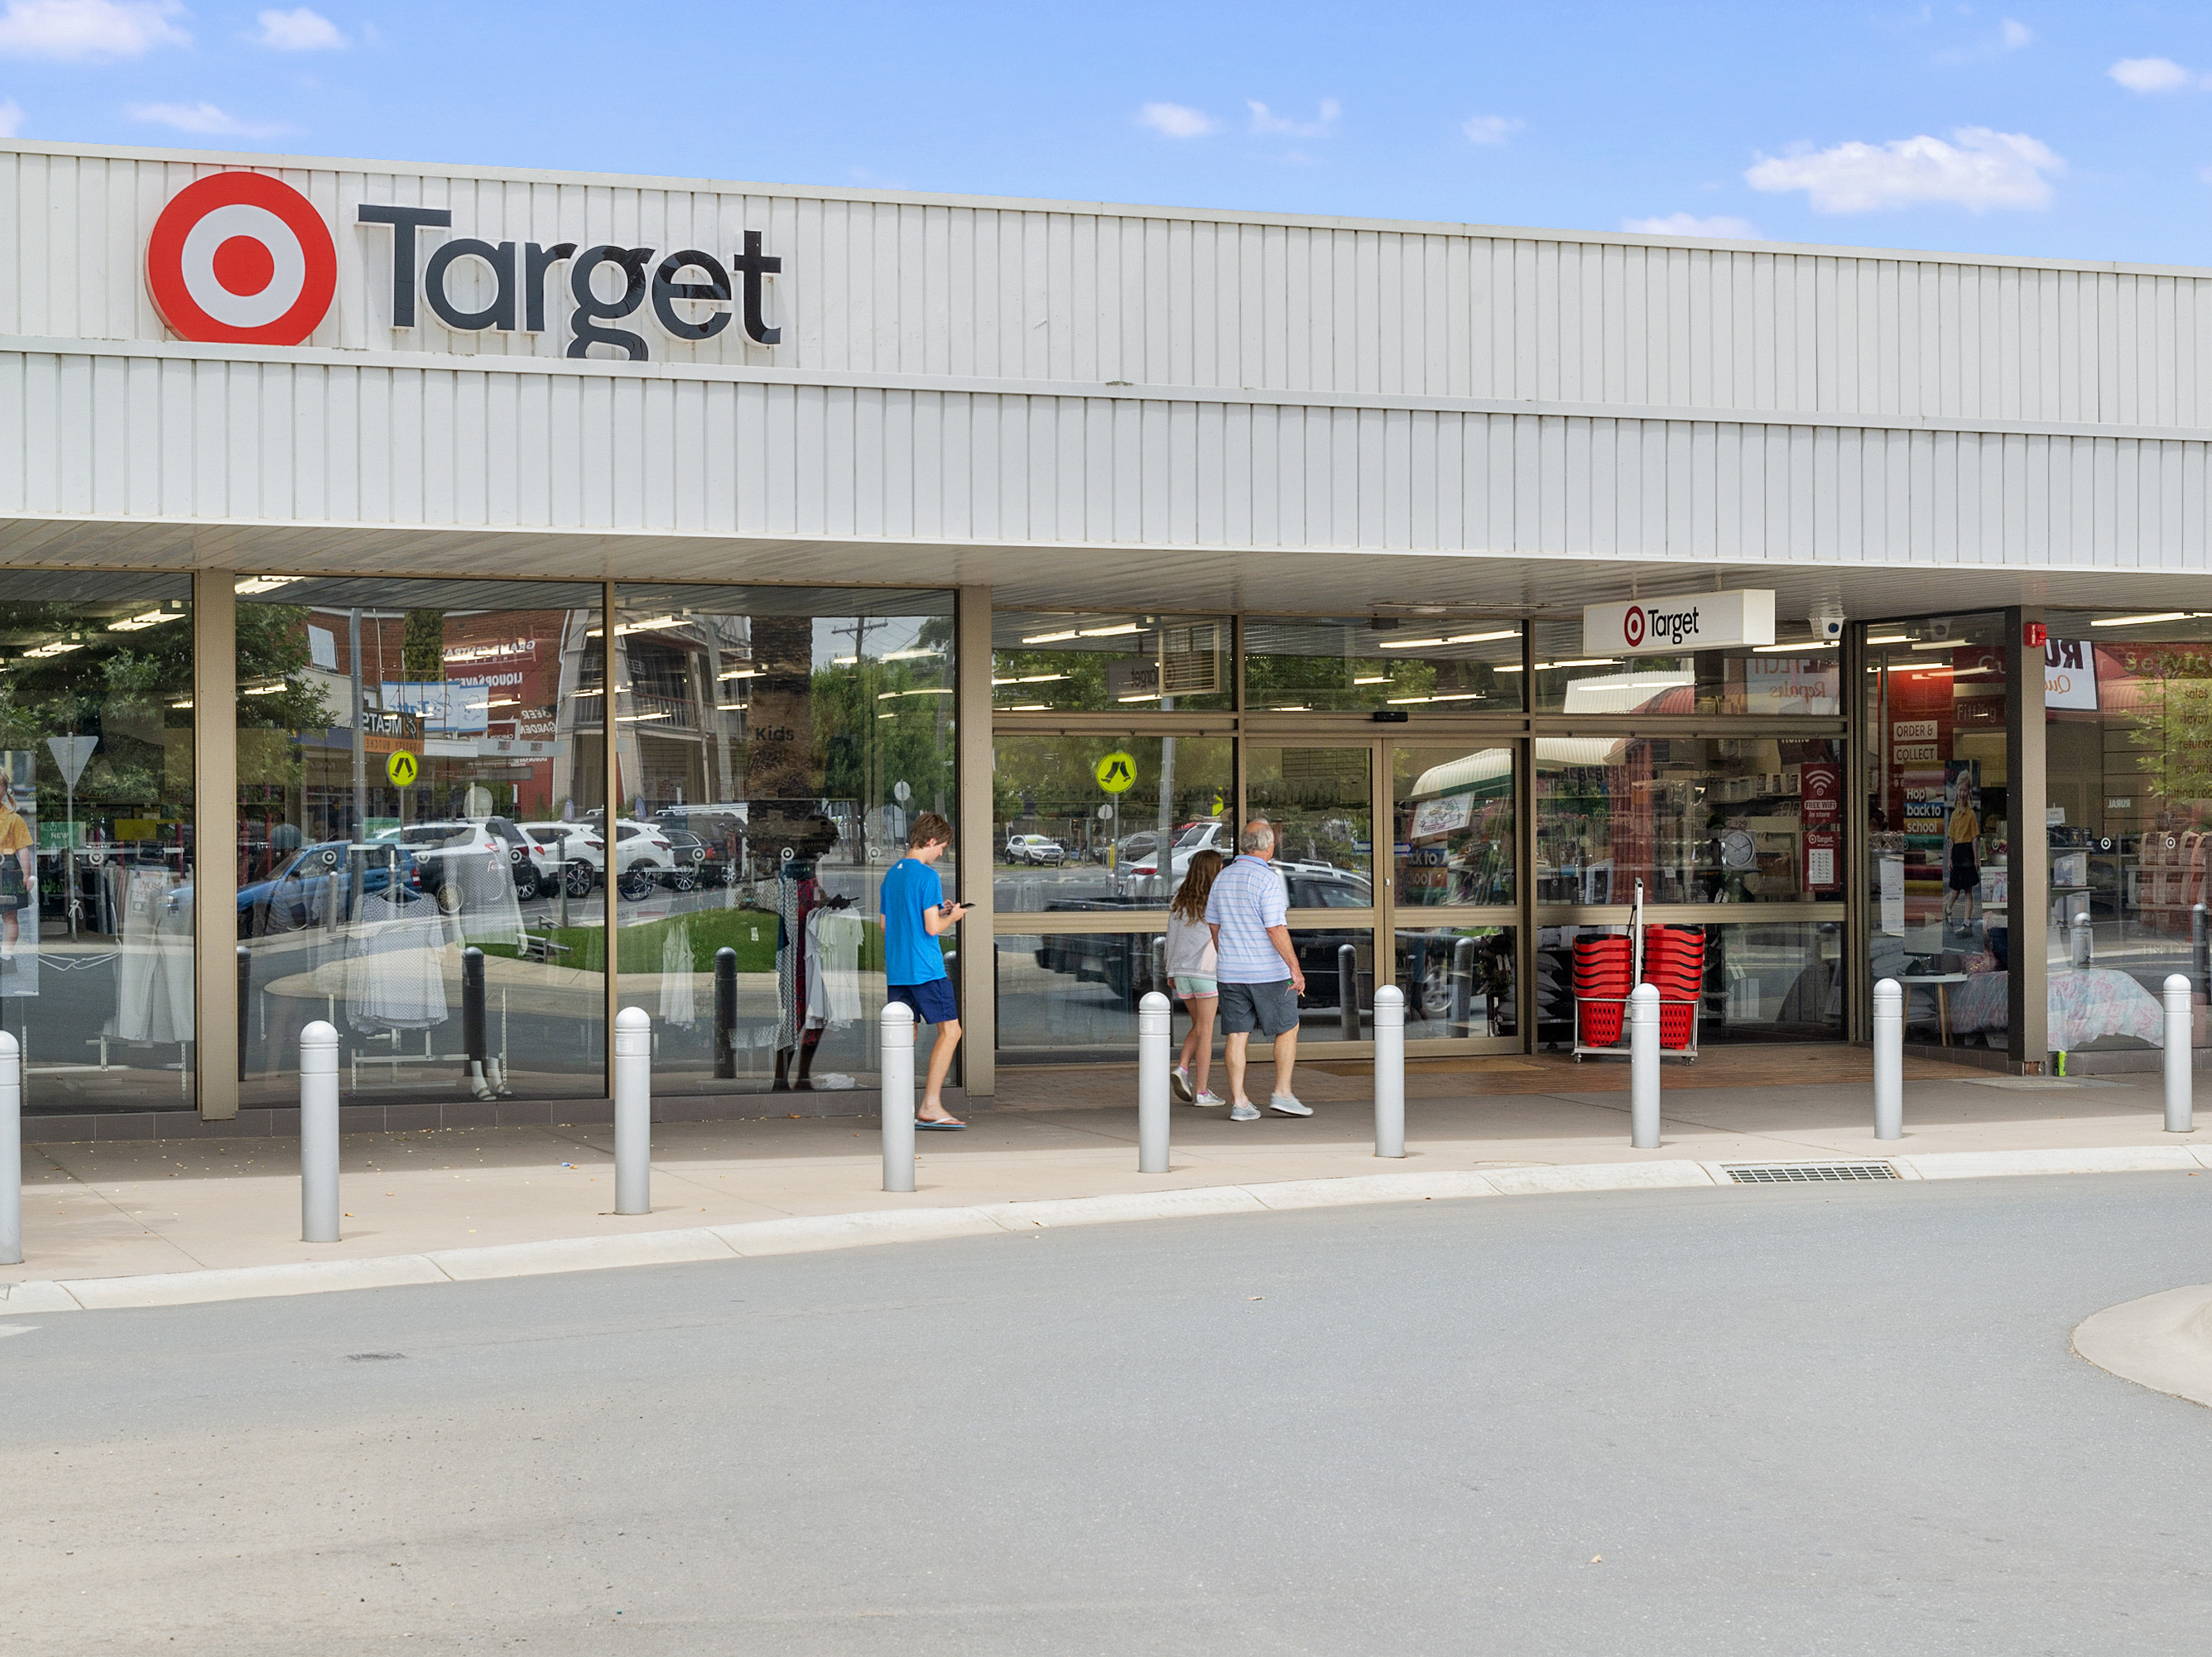 Abosas trophy retail investment - renewed 5 year lease to target